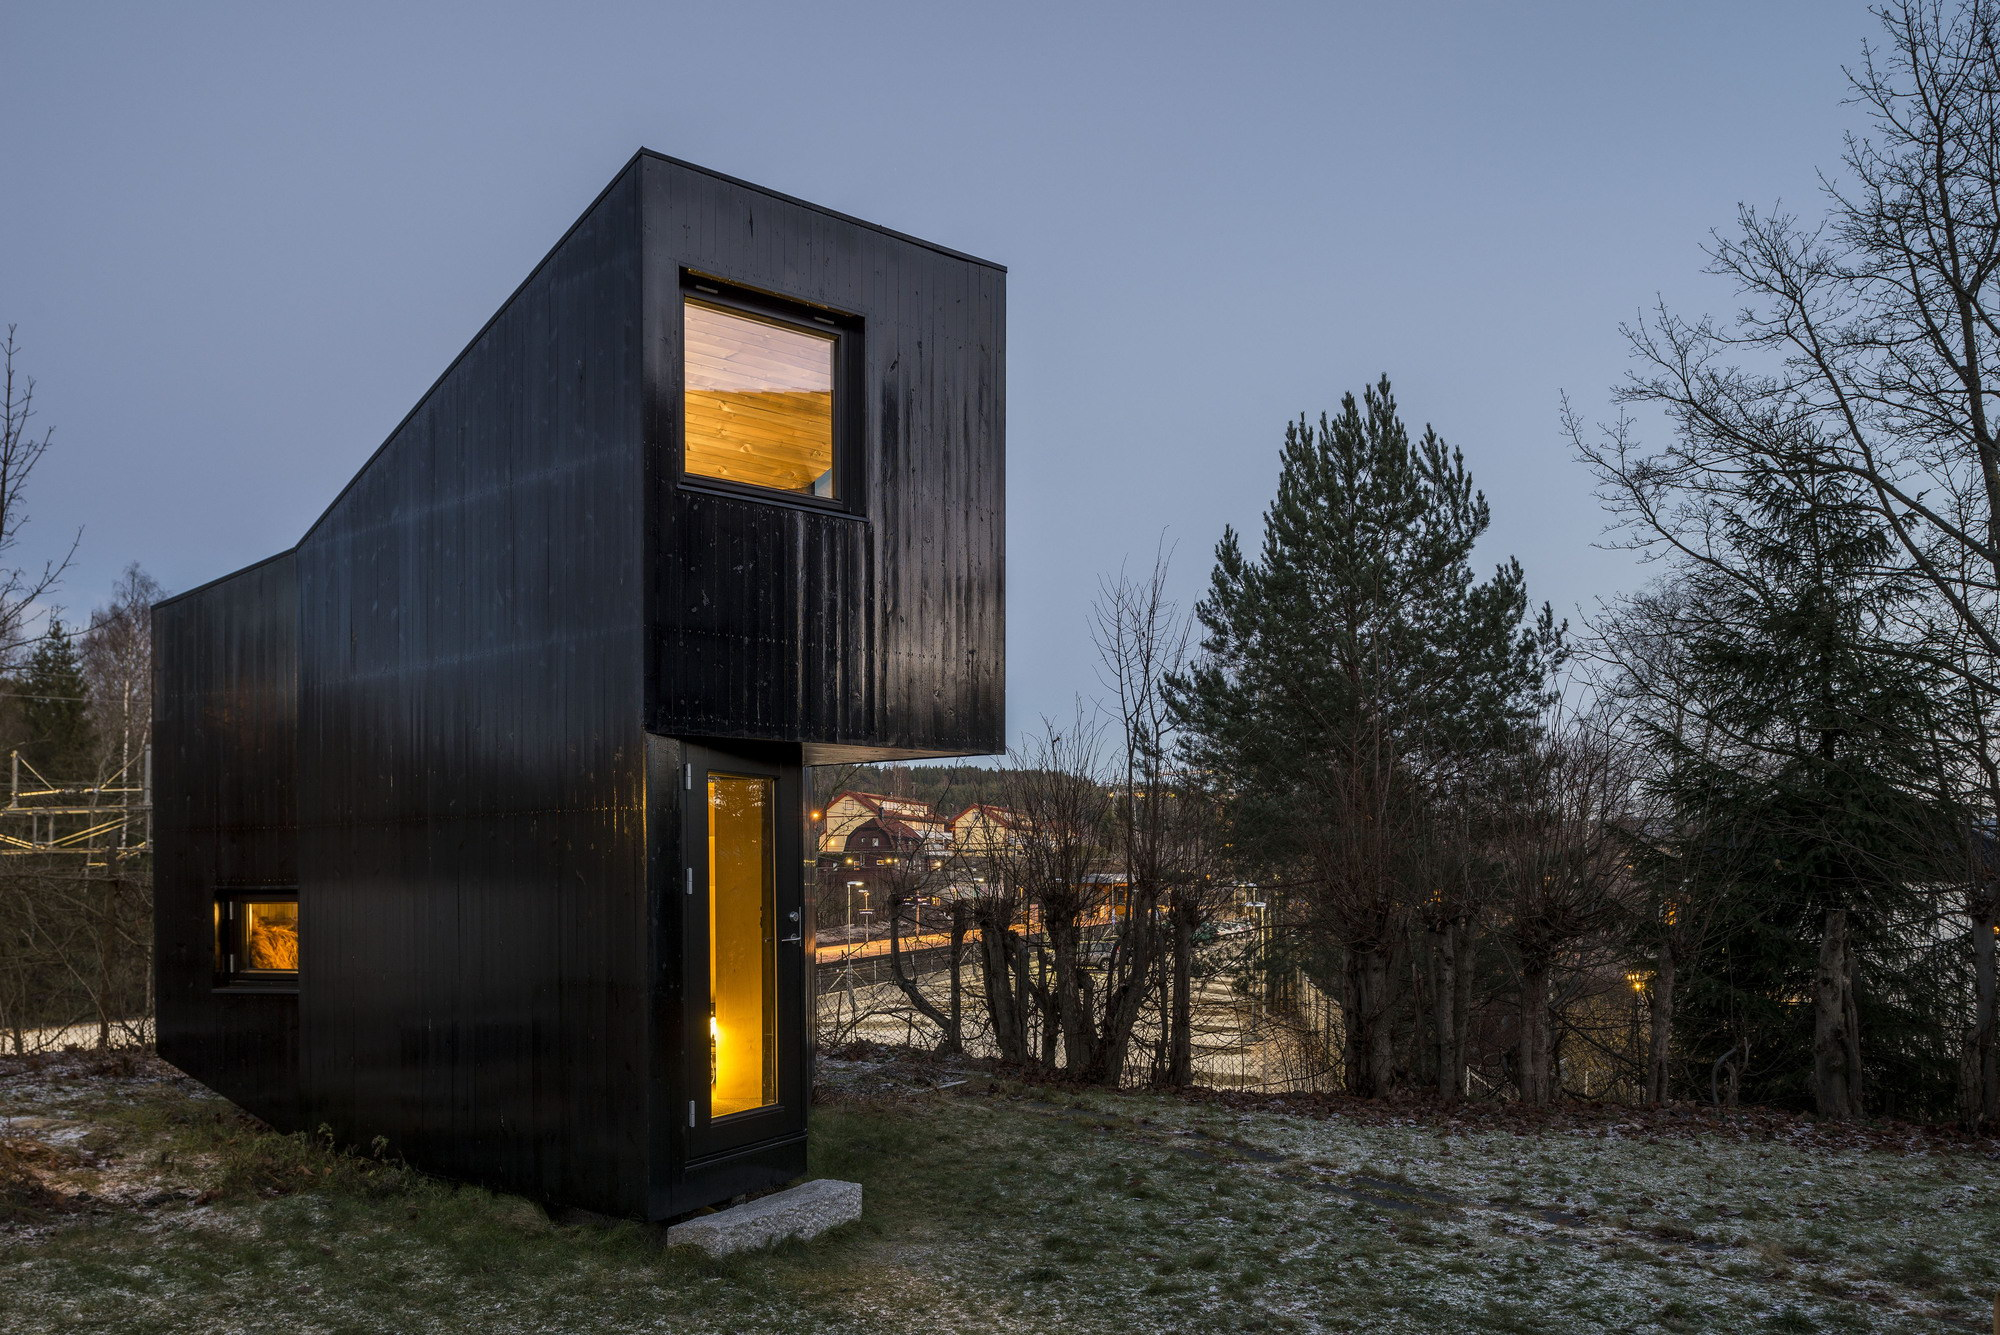 Writers' Cottage by Jarmund/Vigsnæs Architects